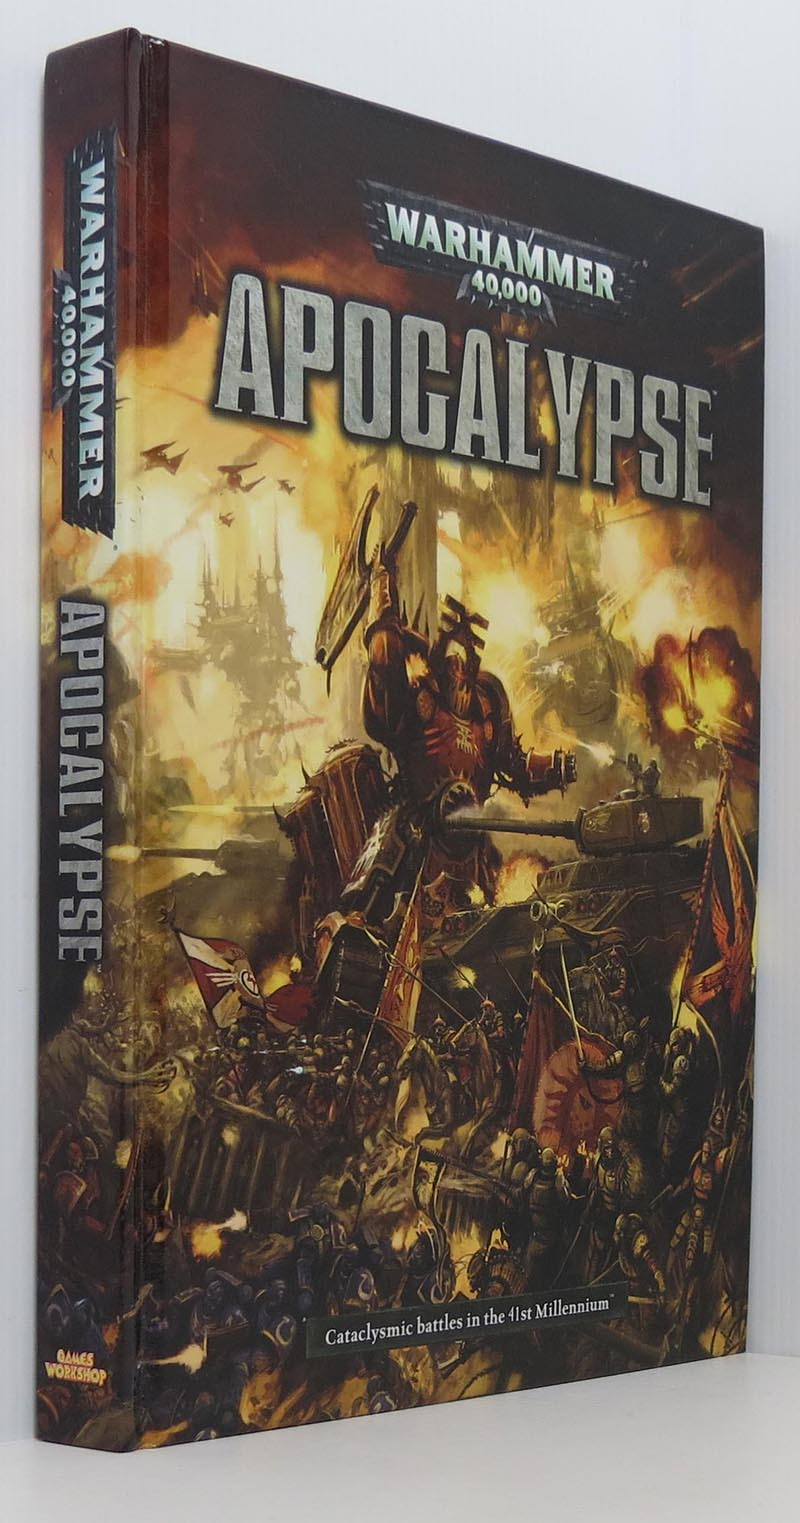 Image for Warhammer 40000: Apocalypse